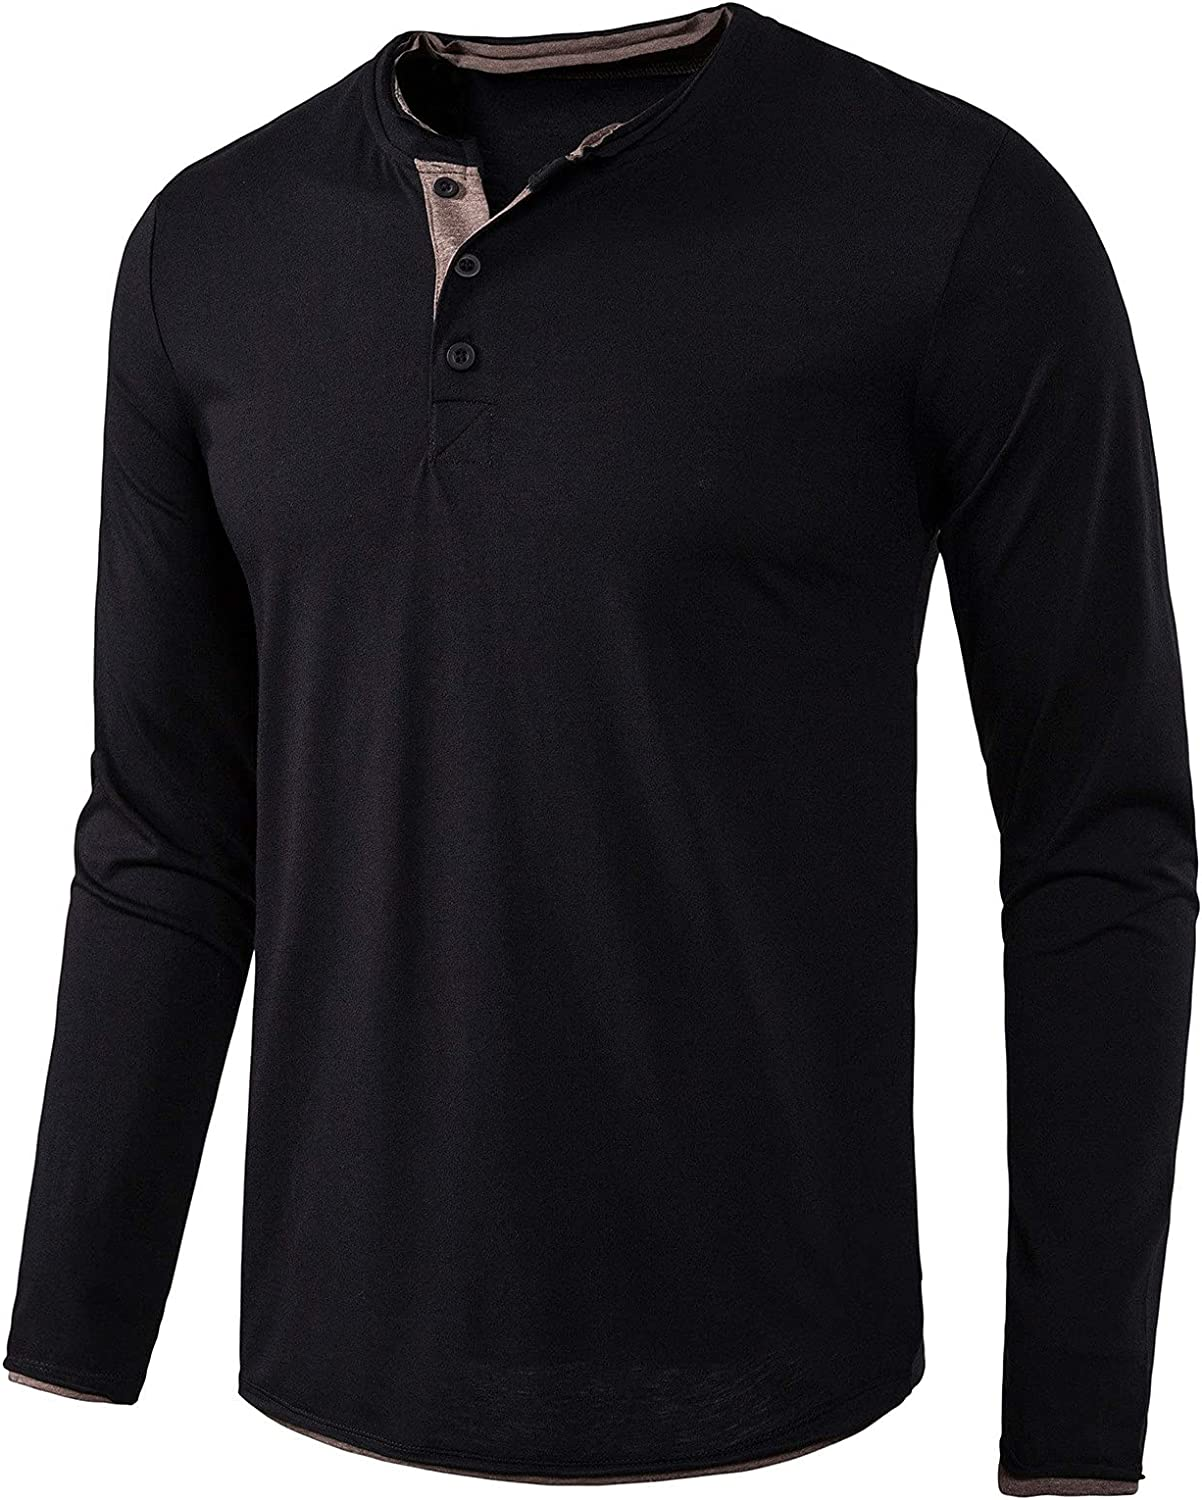 CofeeMO Bravetoshop Men's Henley Shirts Button Long Sleeve Sweatshirt Casual Slim Fit Workout Athletic T-Shirt